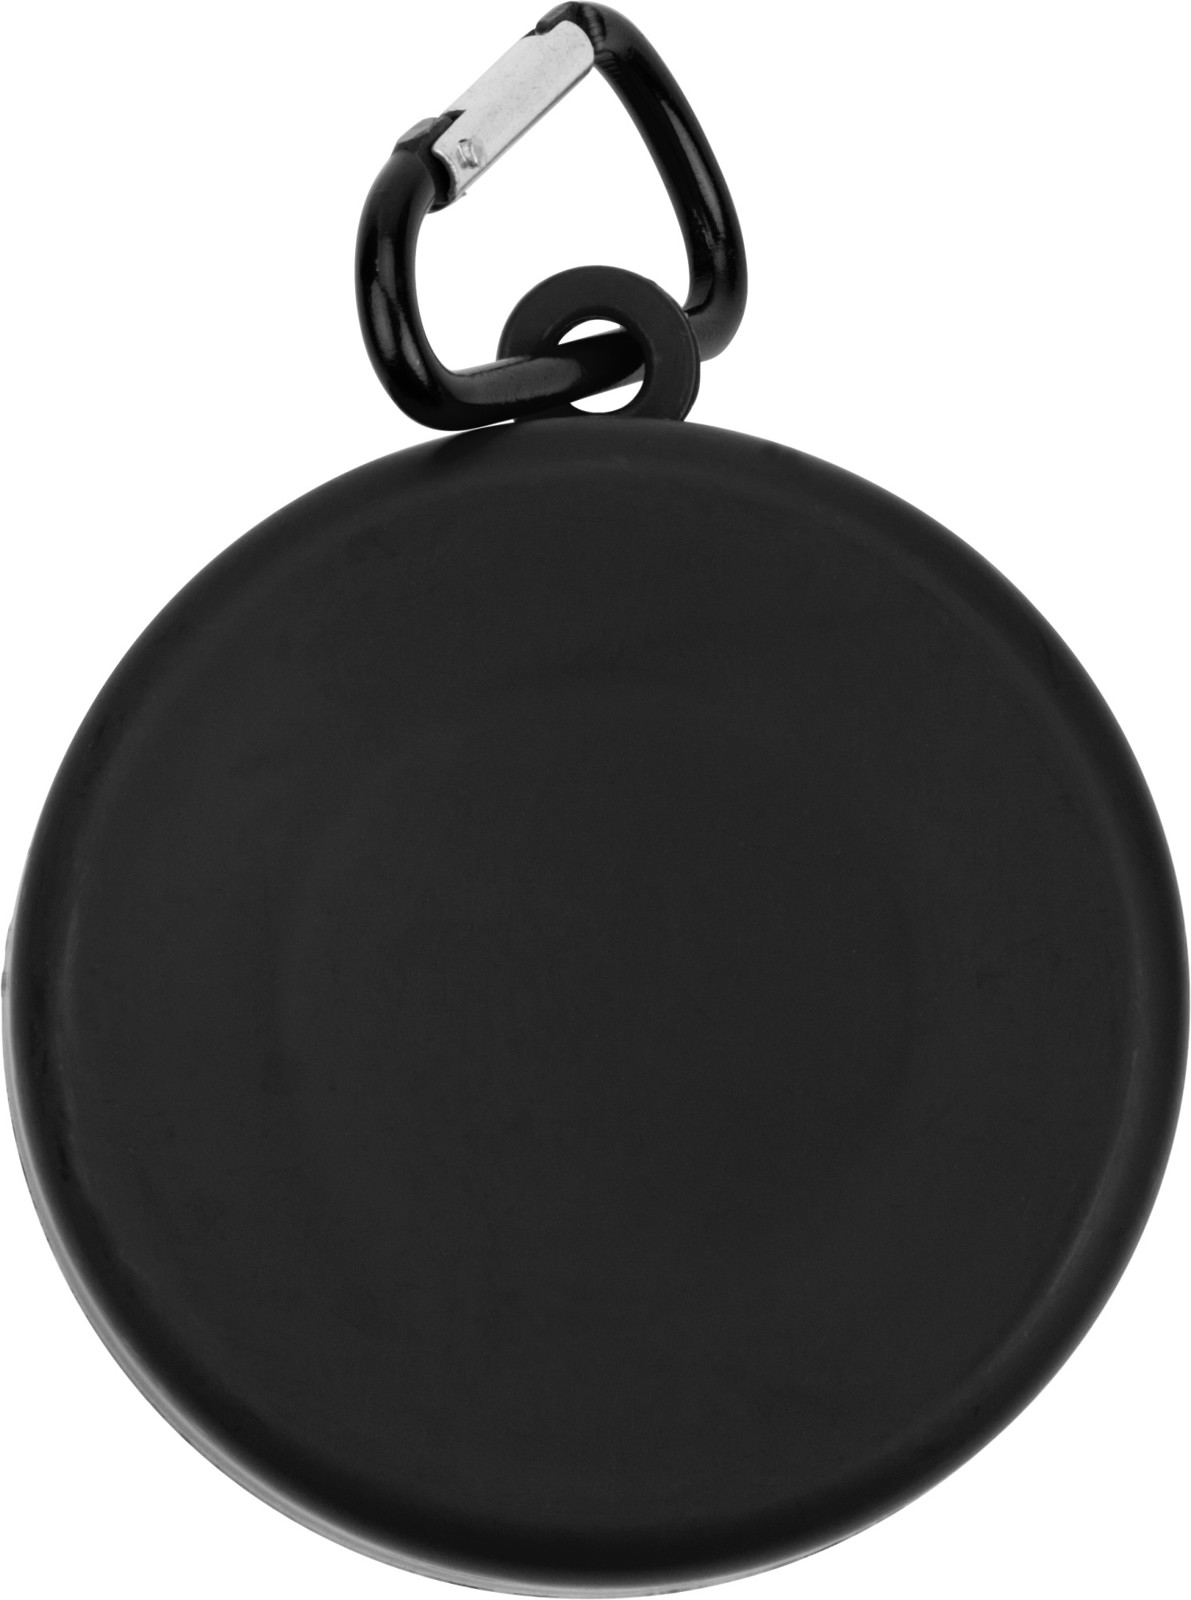 PET drinking cup - Black